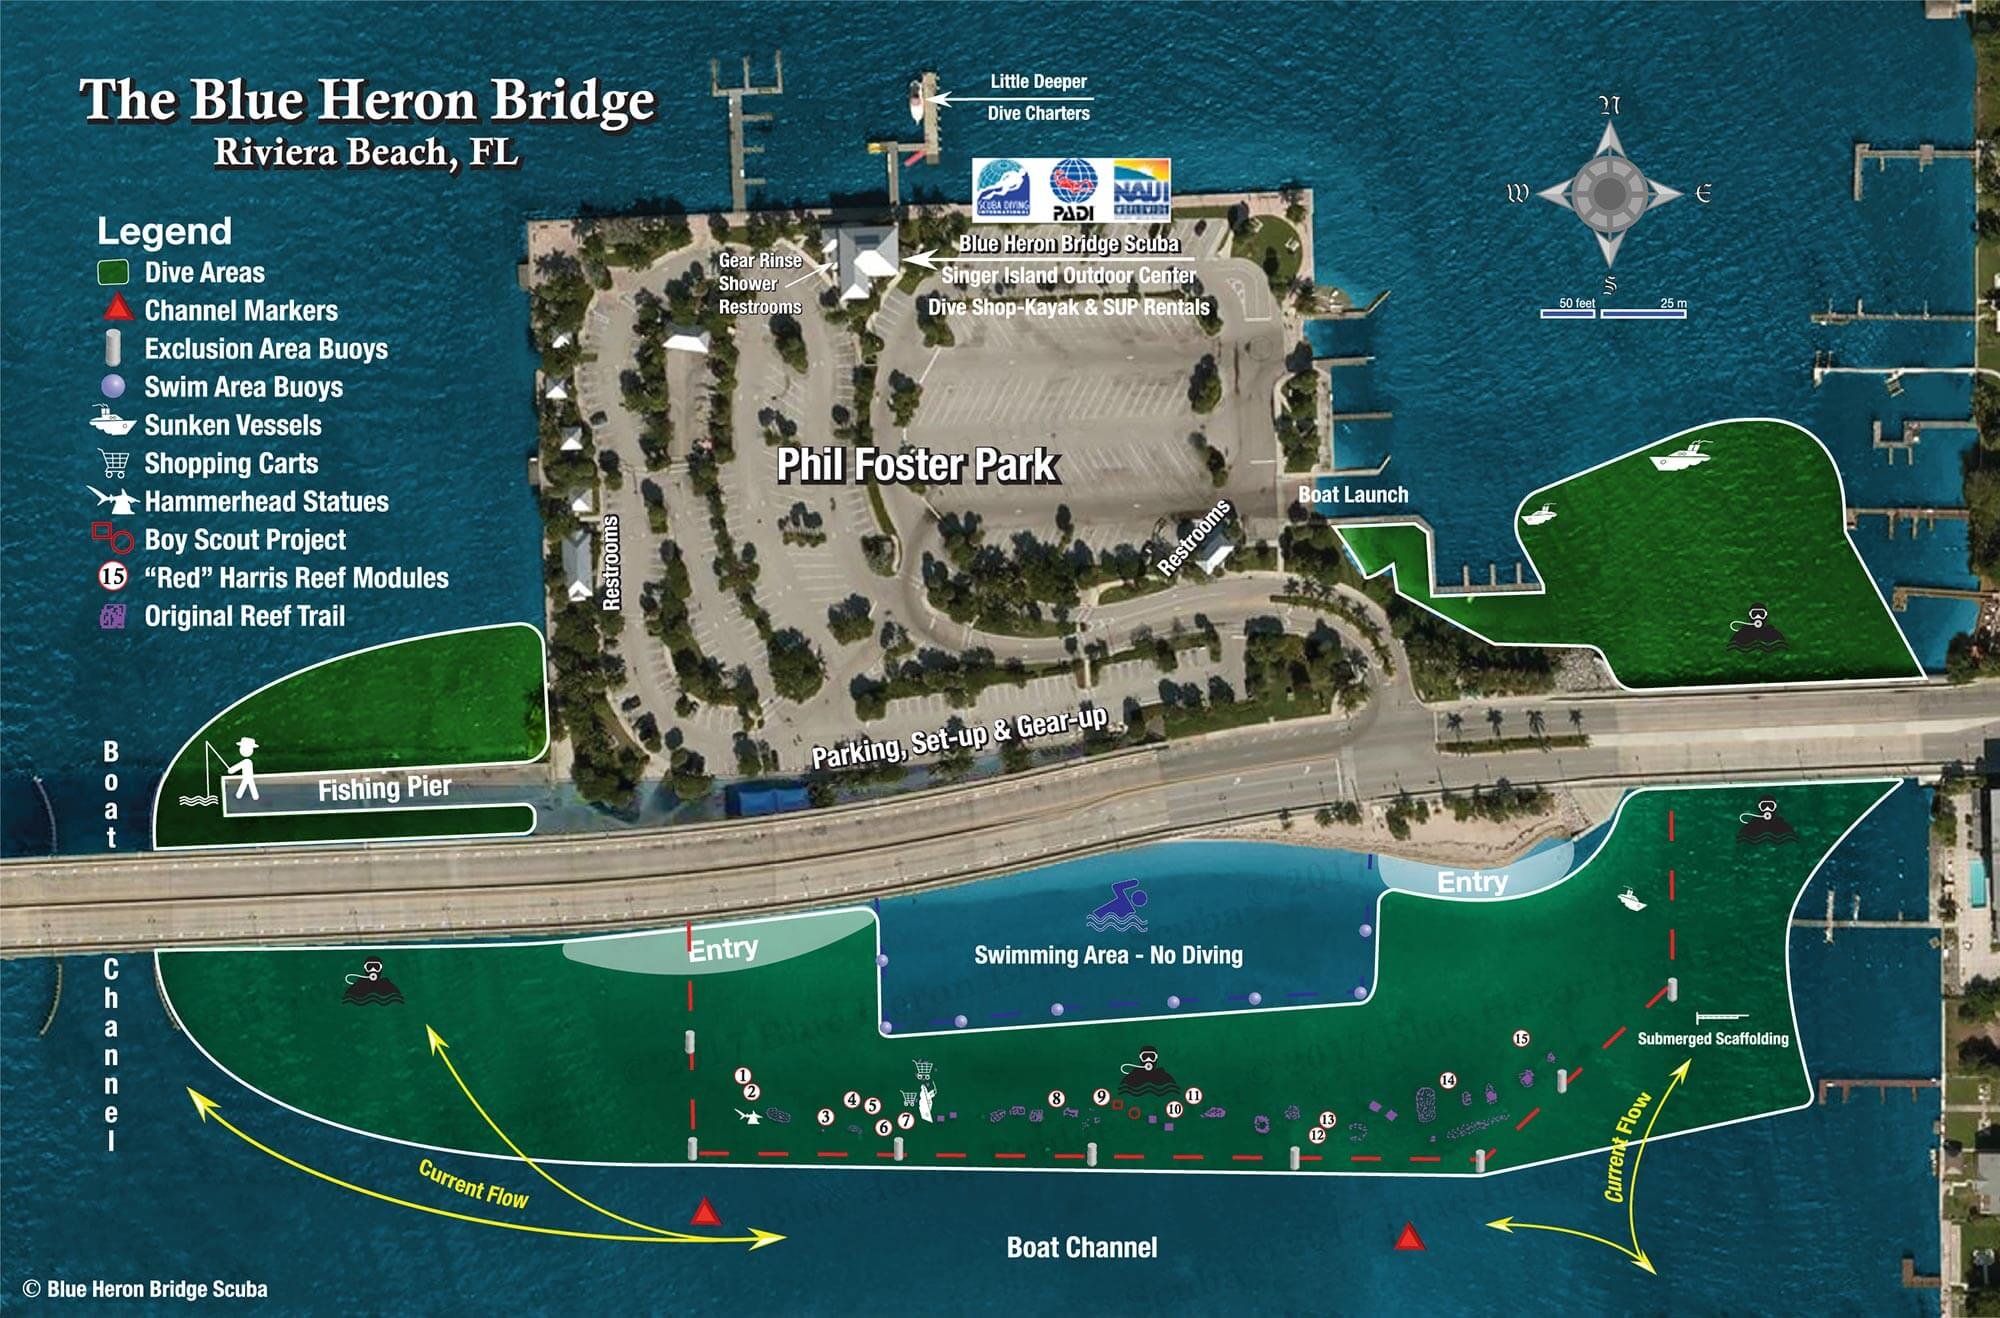 Blue Heron Bridge Scuba Map Courtesy of Blue Heron Bridge Dive Shop